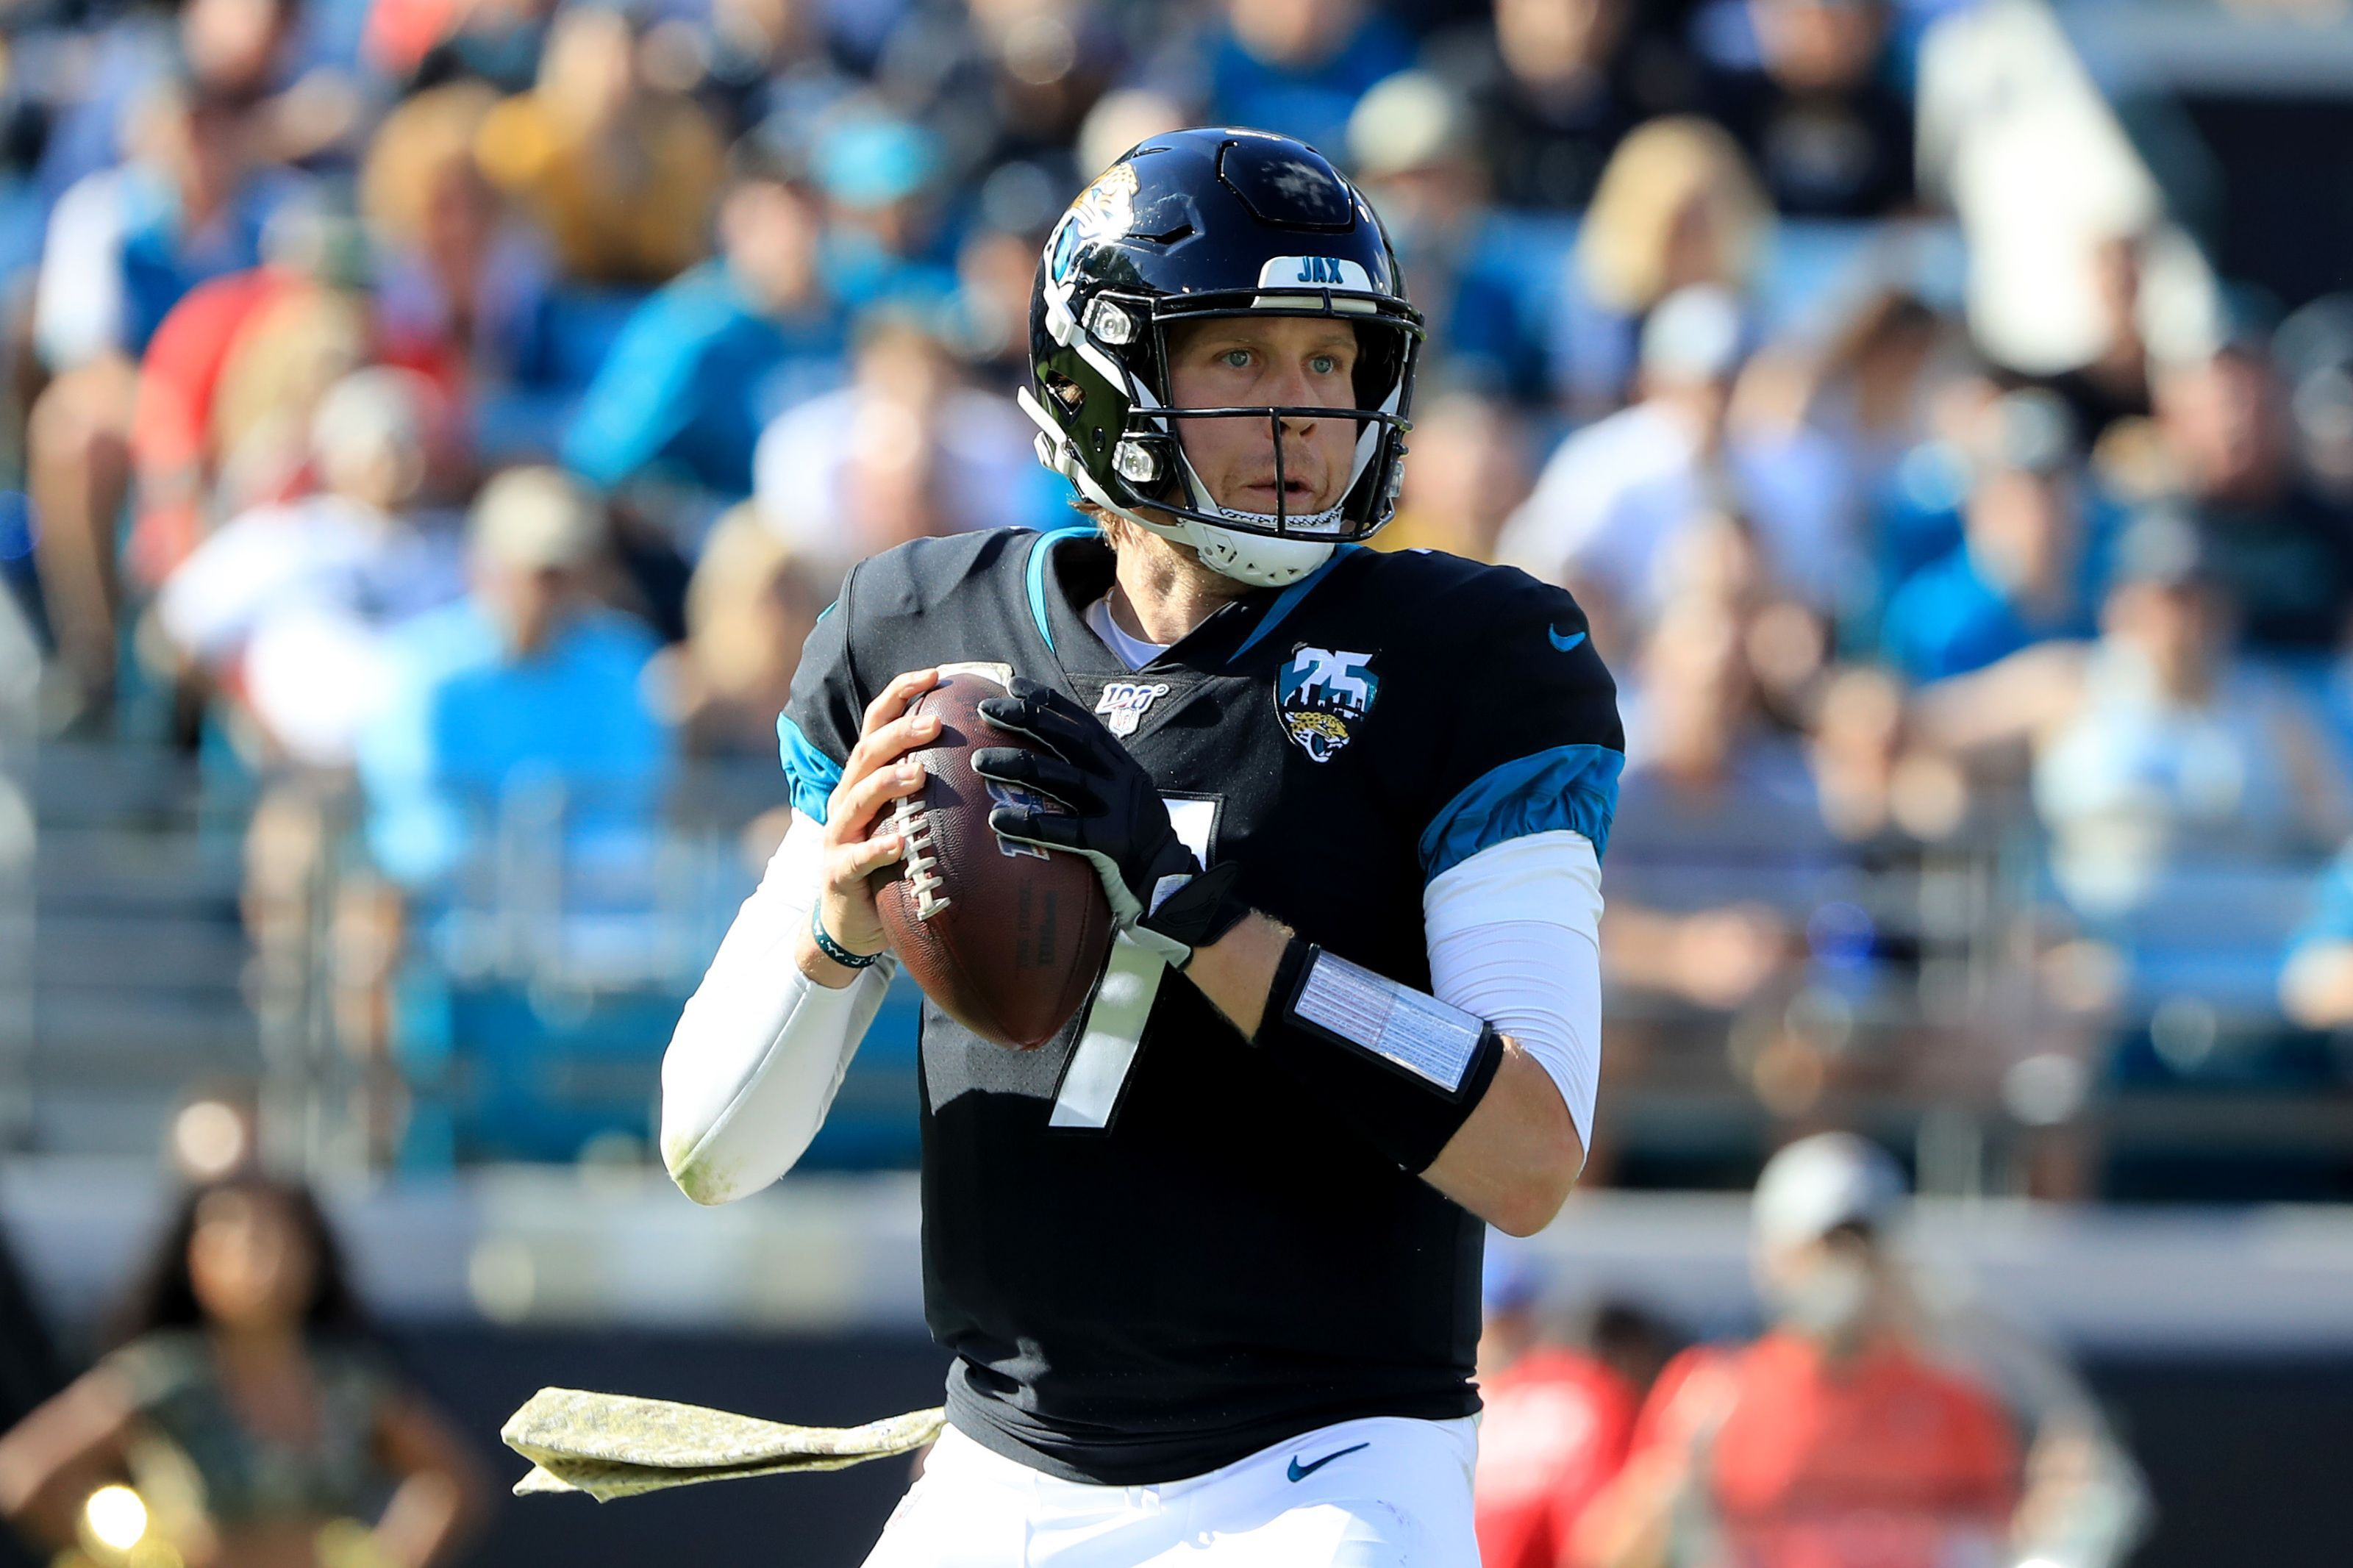 Chicago Bears Why Nick Foles Is Not An Option Despite Recent Hires National Football League News In 2020 National Football League National Football Nfl News